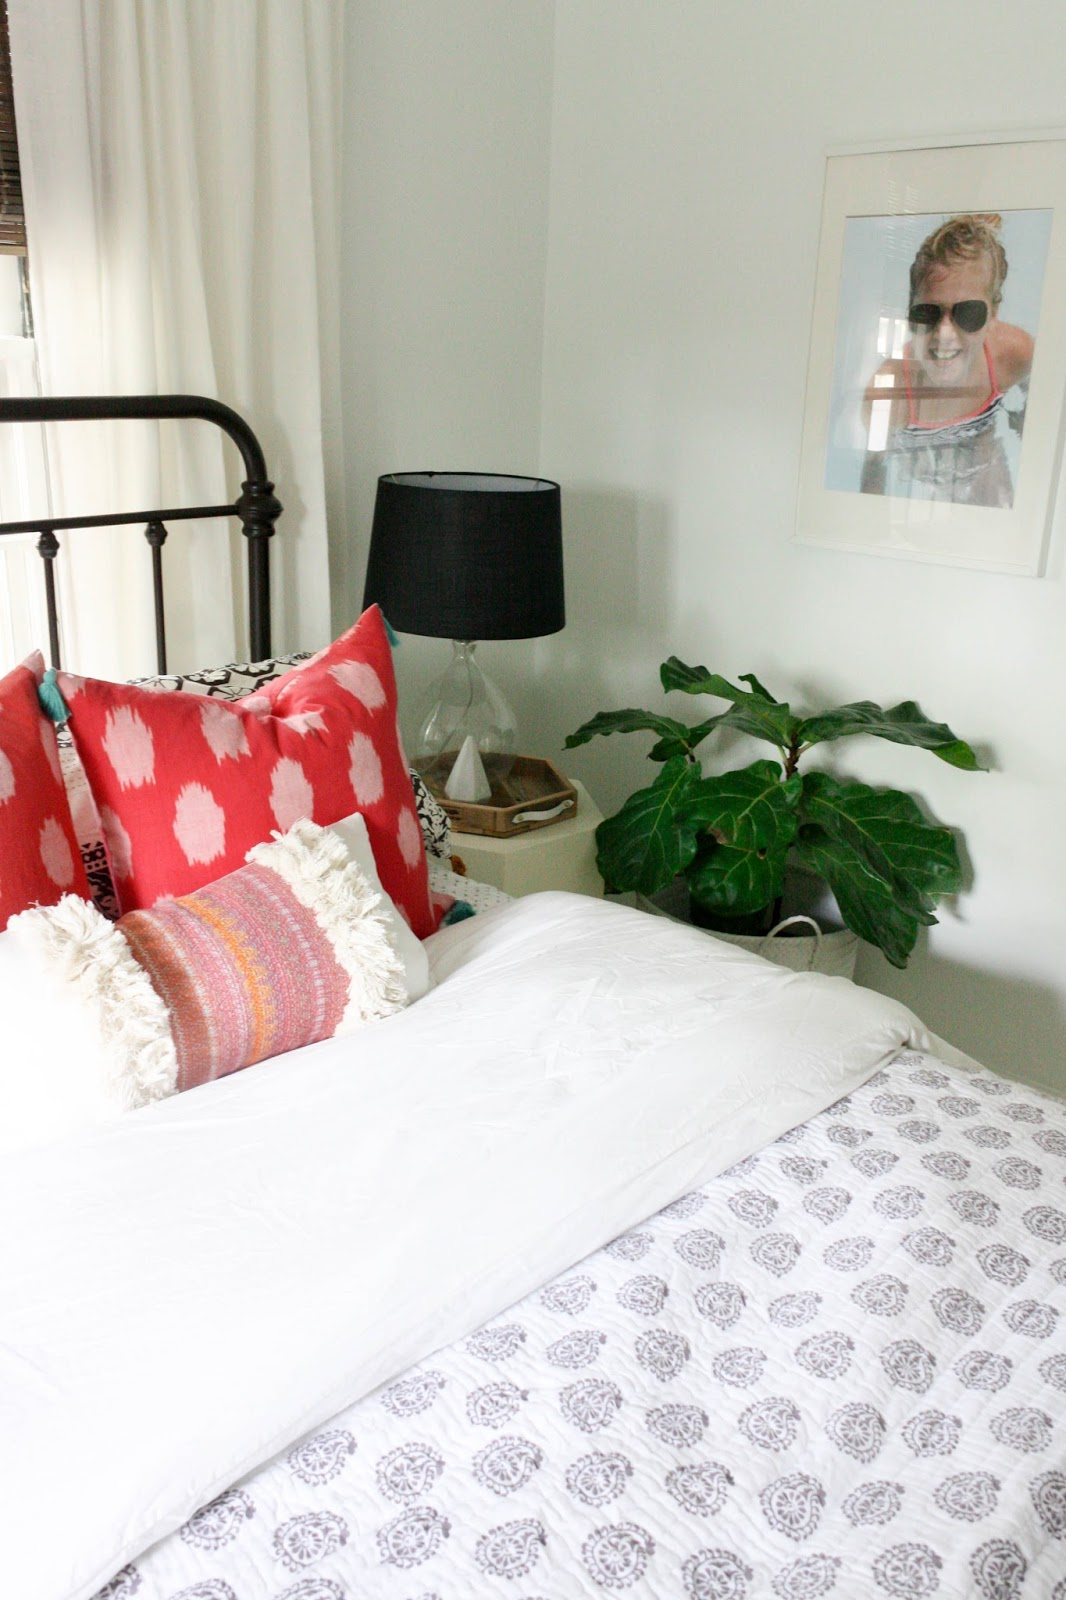 renovations and progress 1 gets a new space of her own house the bedding is a mixture of some of my favorite ikea essential pieces ballard designs homegoods anthropologie and her favorite this pillow from taisa